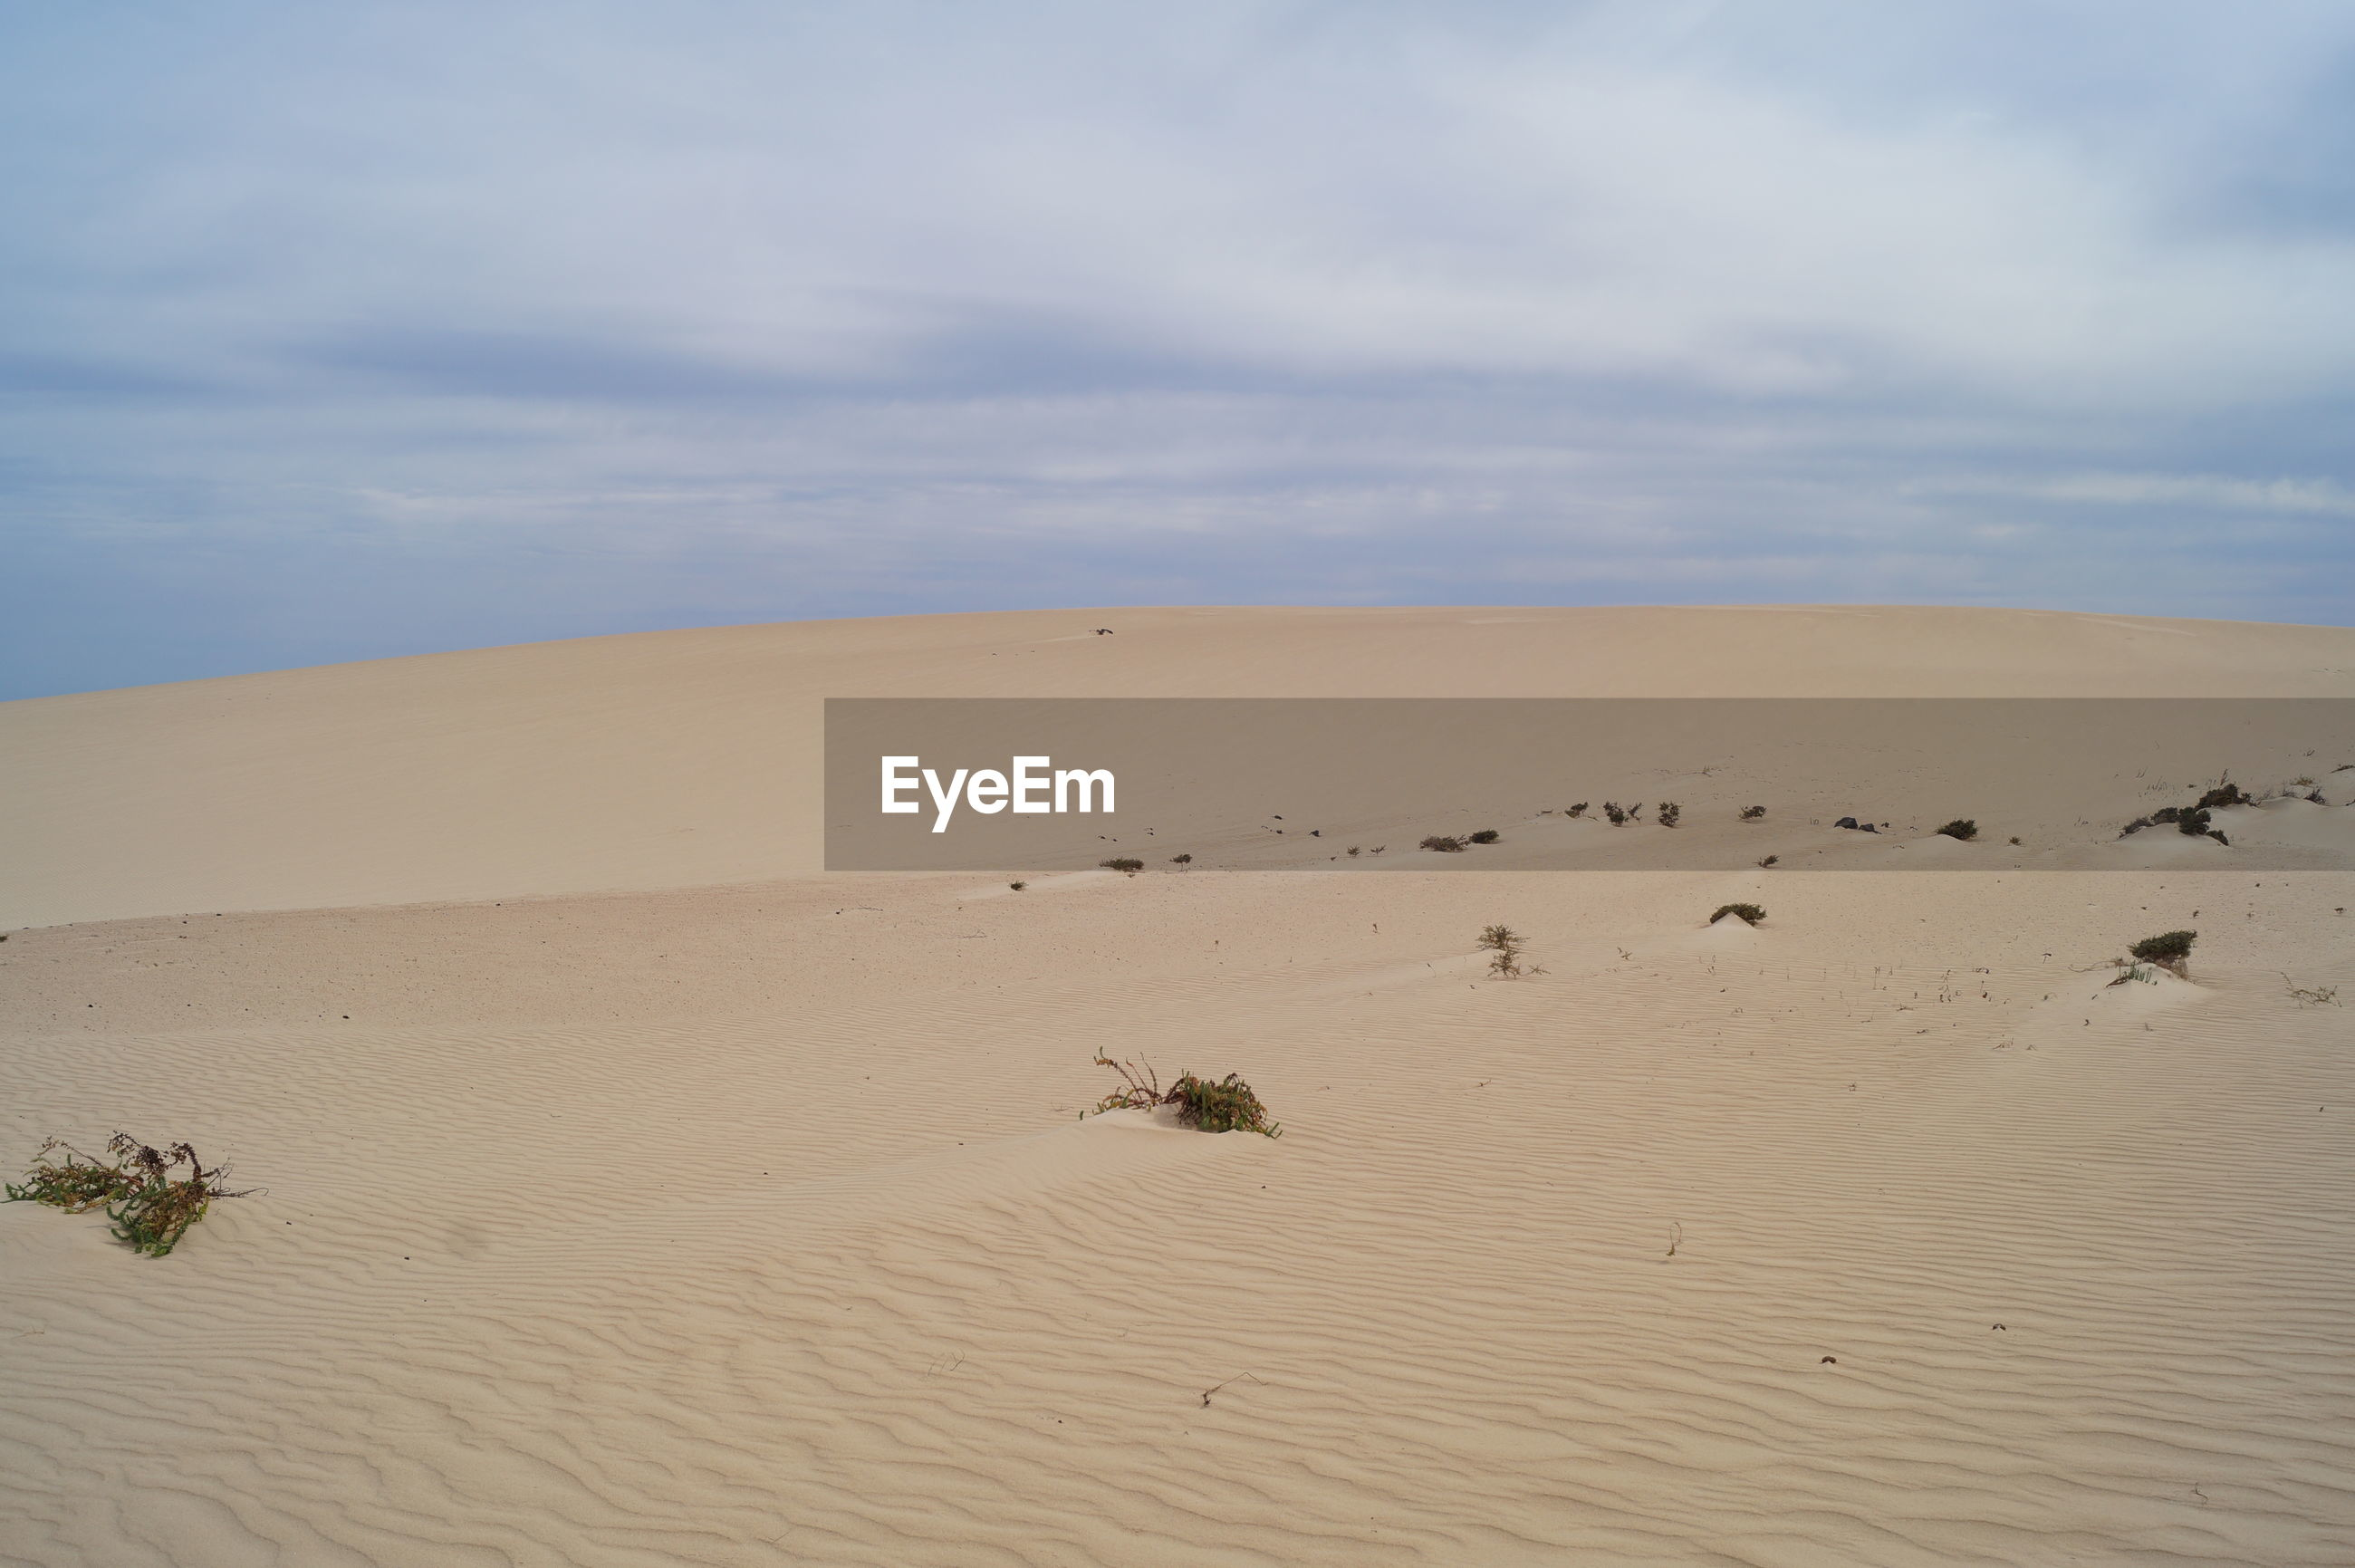 sand, sand dune, nature, sky, cloud - sky, tranquil scene, desert, tranquility, scenics, arid climate, landscape, day, outdoors, beauty in nature, no people, mammal, animal themes